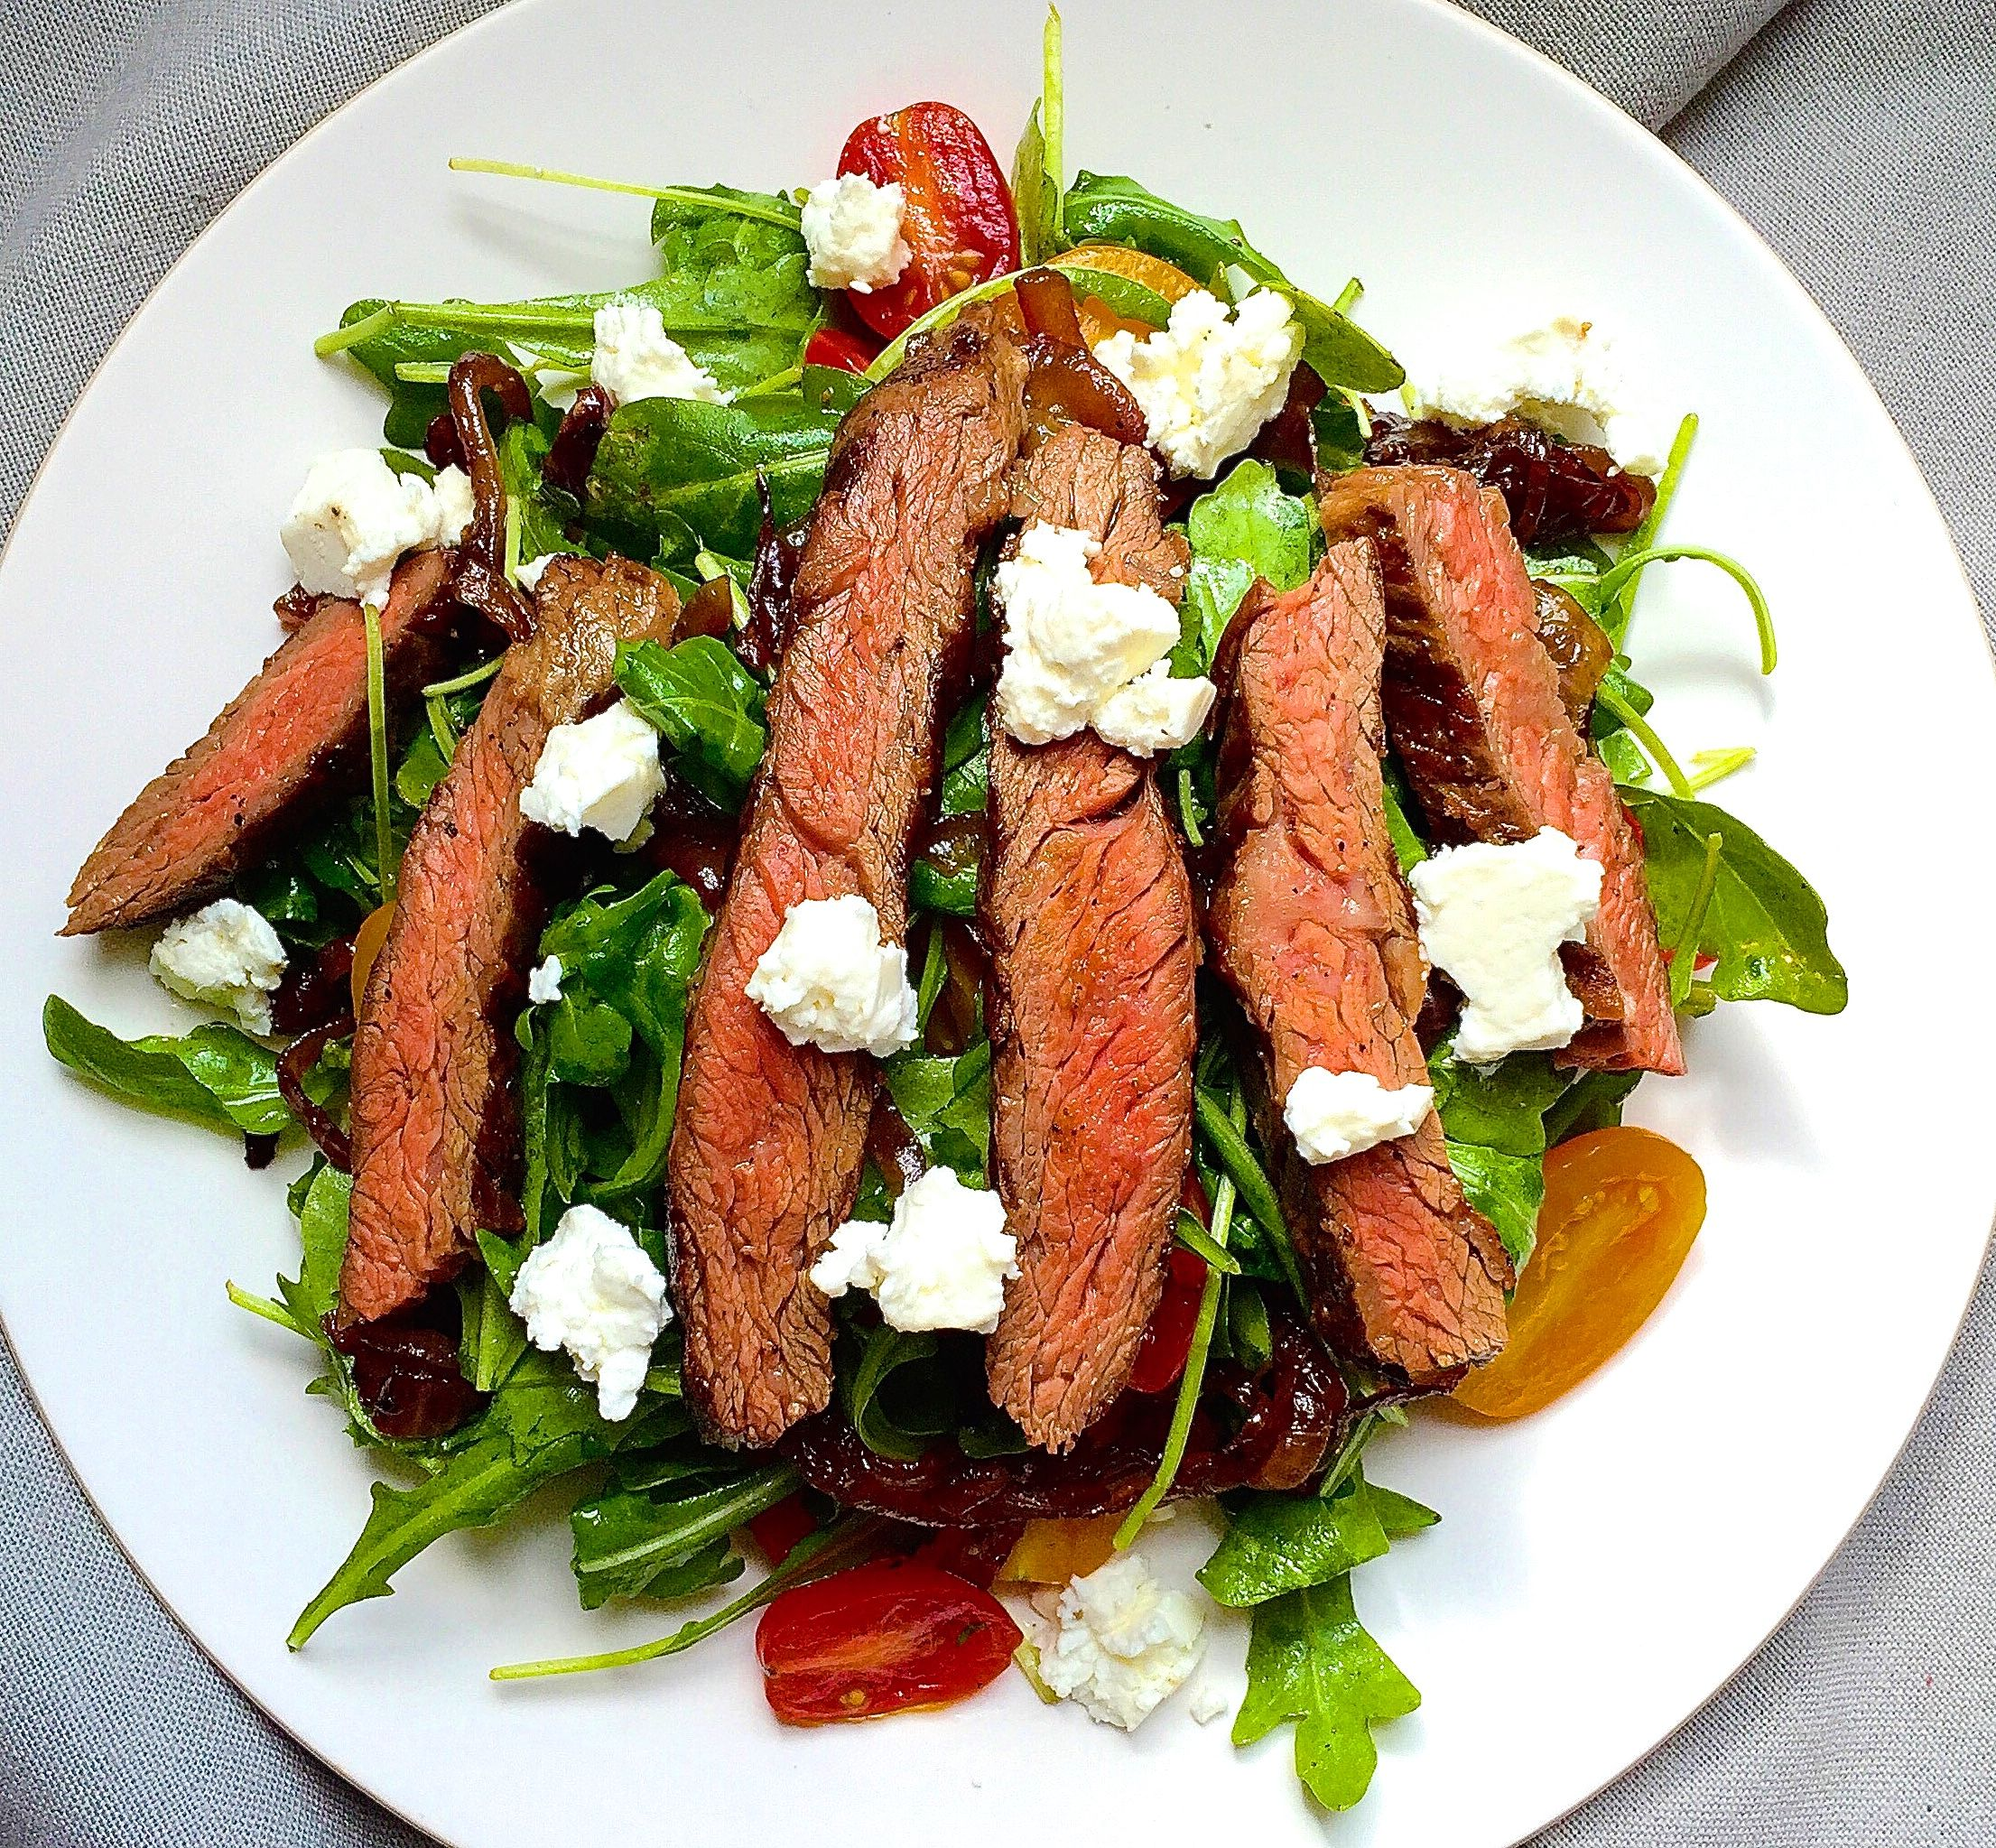 Grilled Skirt Steak Salad With Arugula Balsamic Glazed Onions Tomatoes And Feta Recipe Delish Com